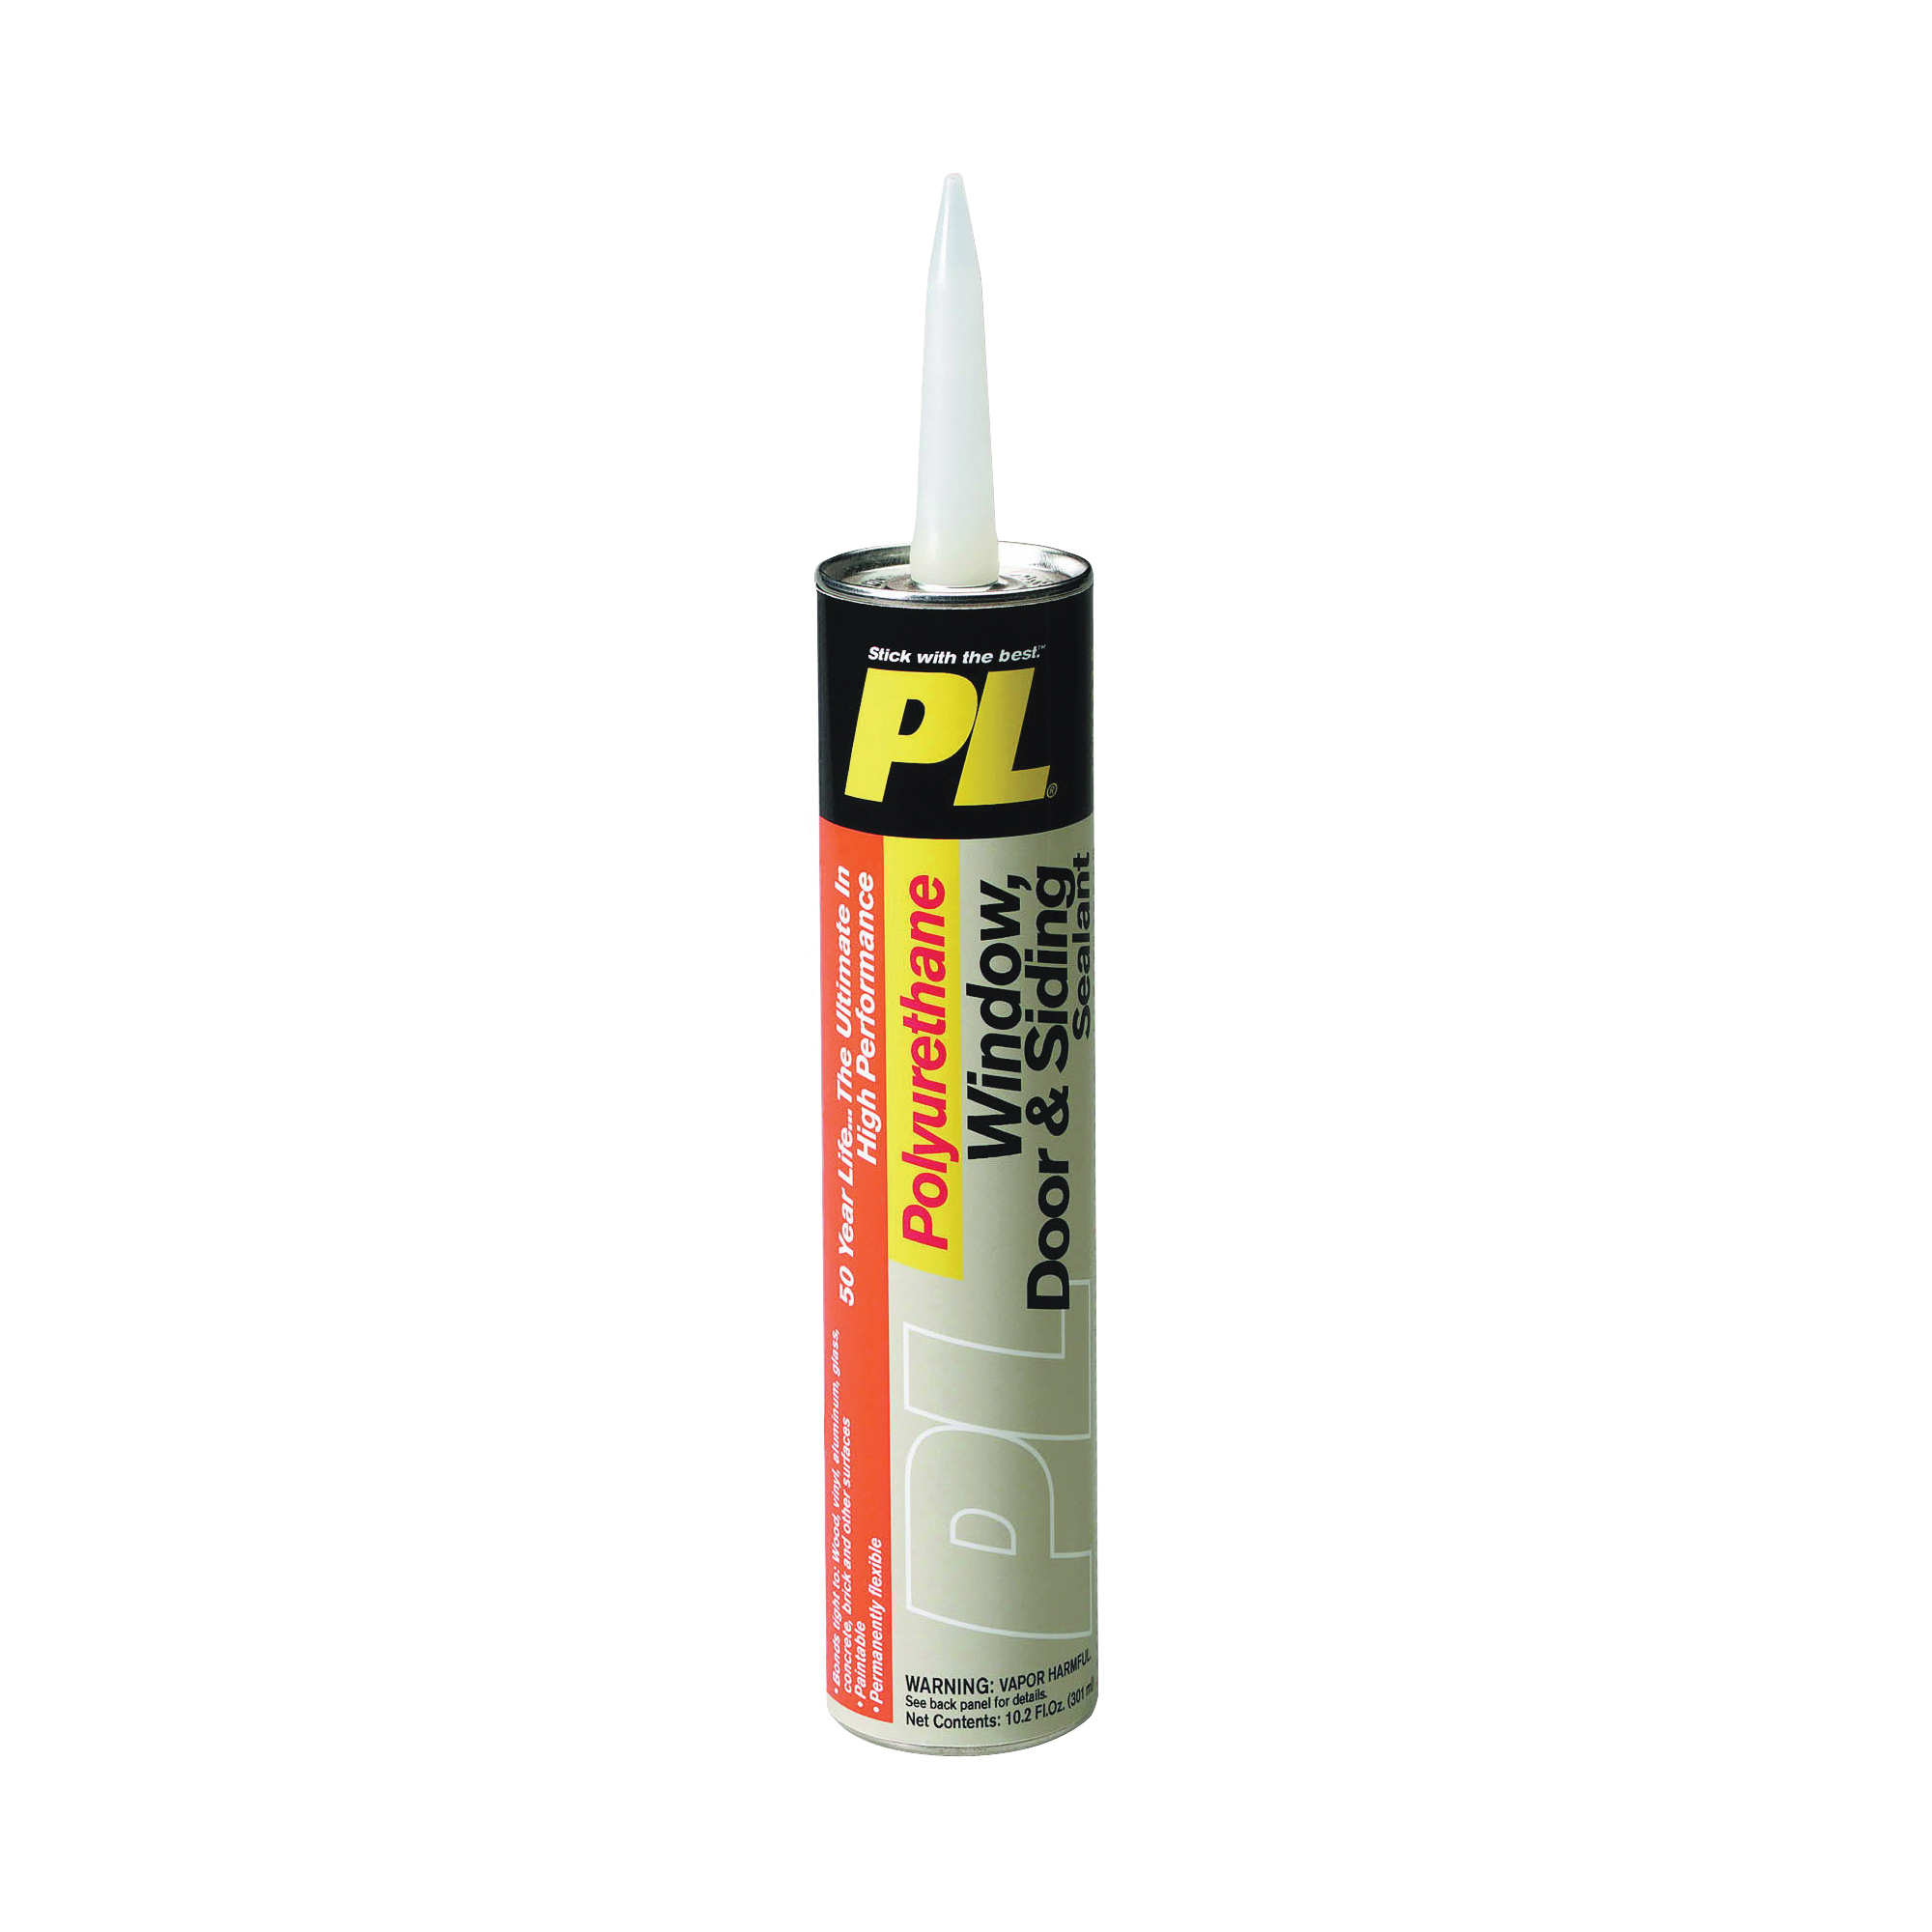 Picture of Loctite 1618175 Polyurethane Sealant, Bronze, 7 Days Curing, 20 to 120 deg F, 10 oz Package, Cartridge